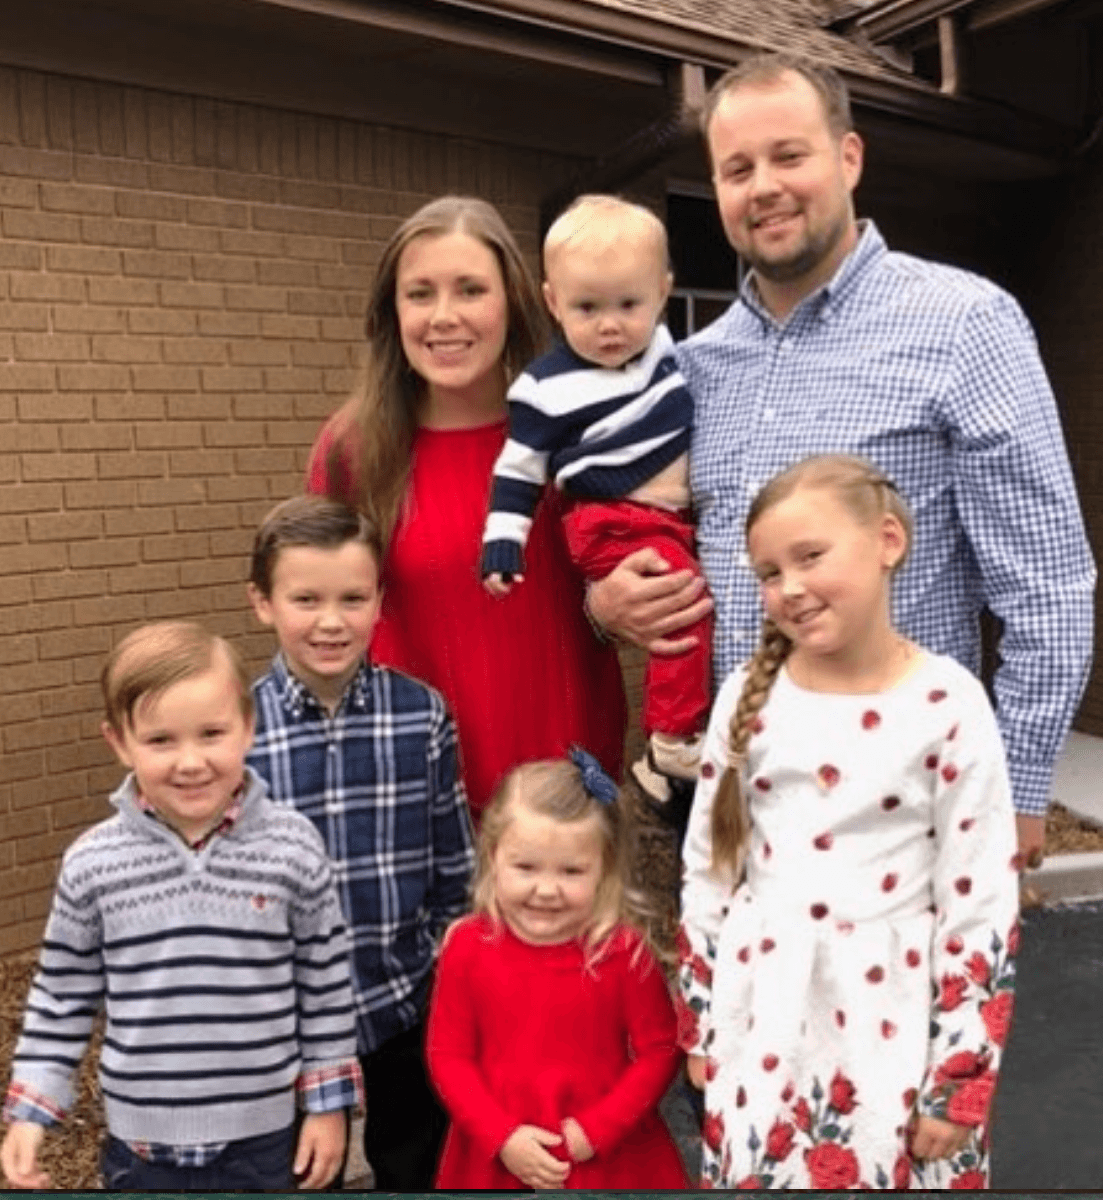 15 Times the Duggar Children Broke the Family Rules